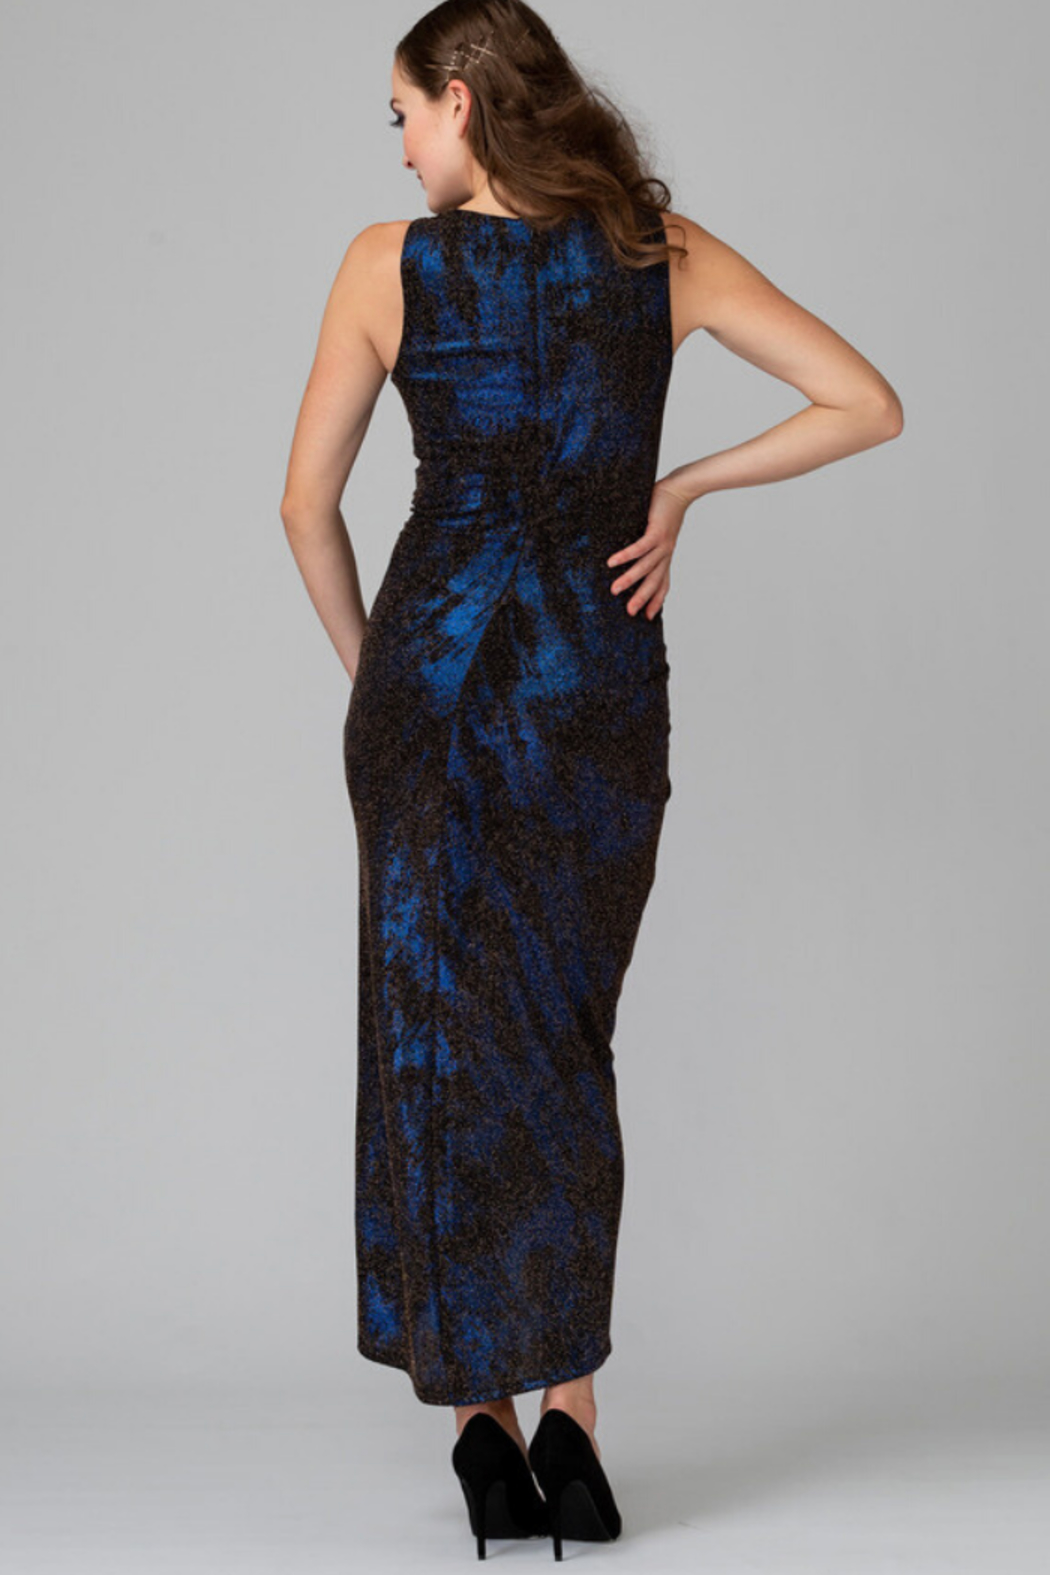 Joseph Ribkoff Metallic Ruched Dress - Side Cropped Image